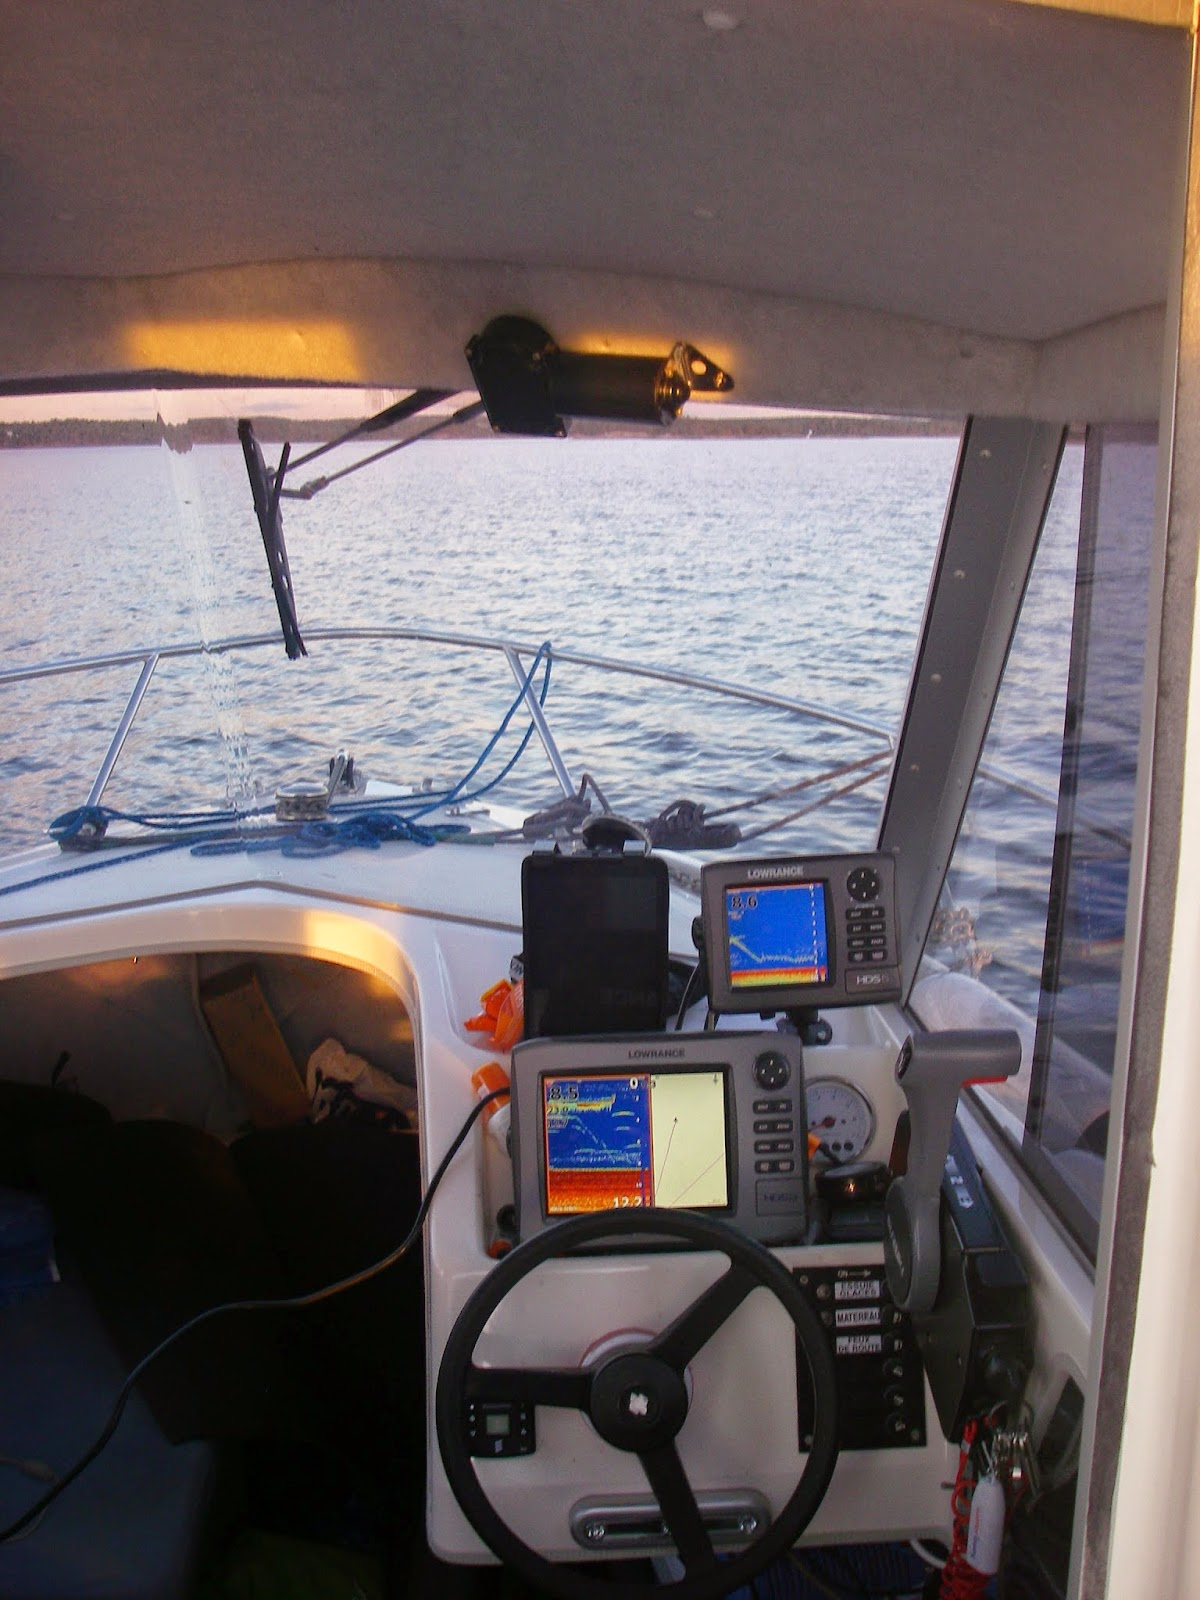 Team Colibri: What is the difference between Lowrance HDS